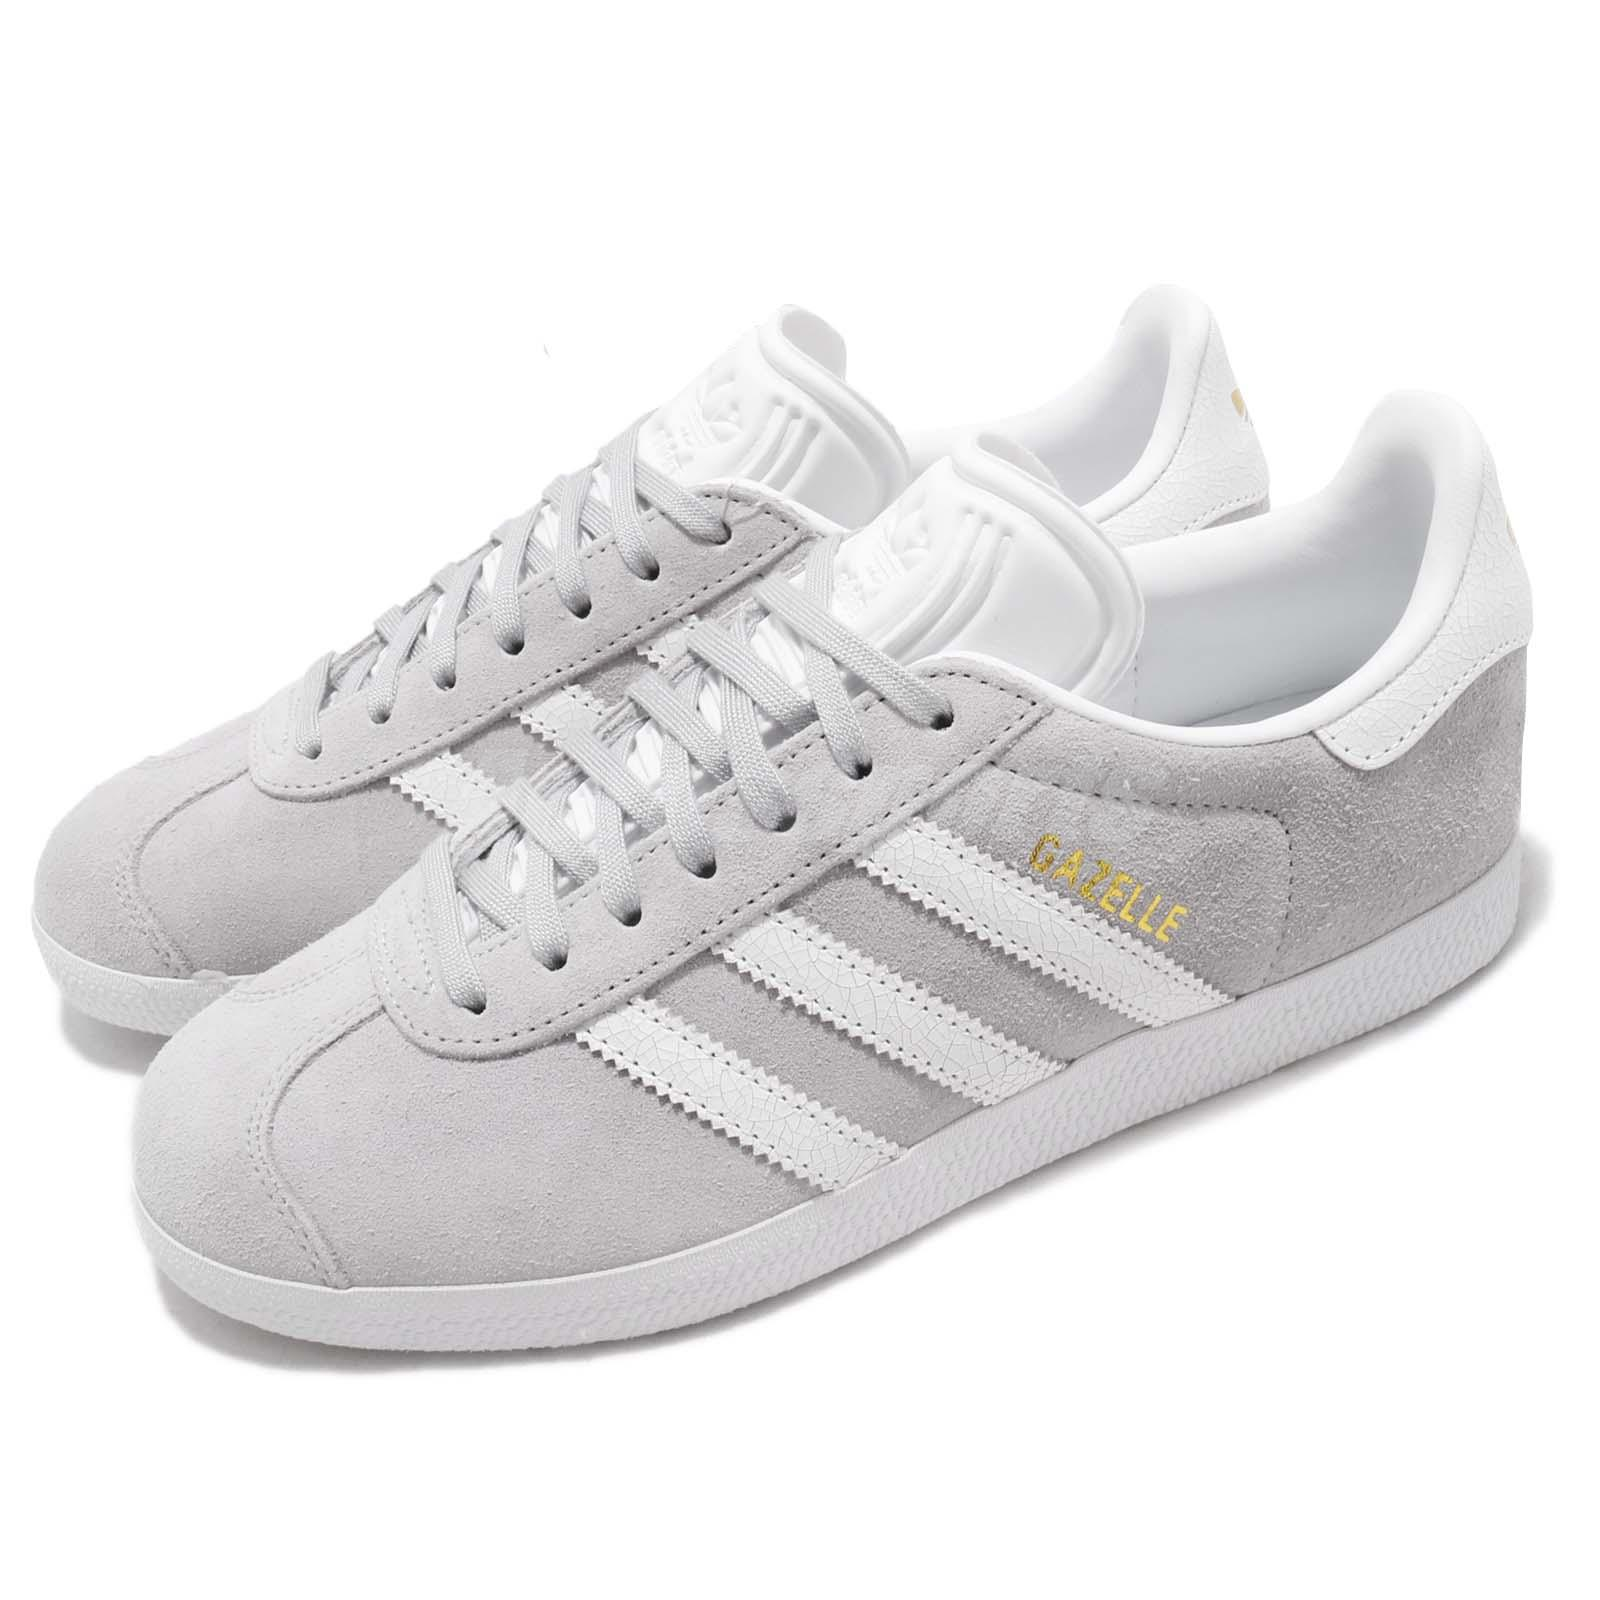 99d8c4711e4b Details about adidas Originals Gazelle W Grey White Women Casual Classic  Shoes Sneakers B41659